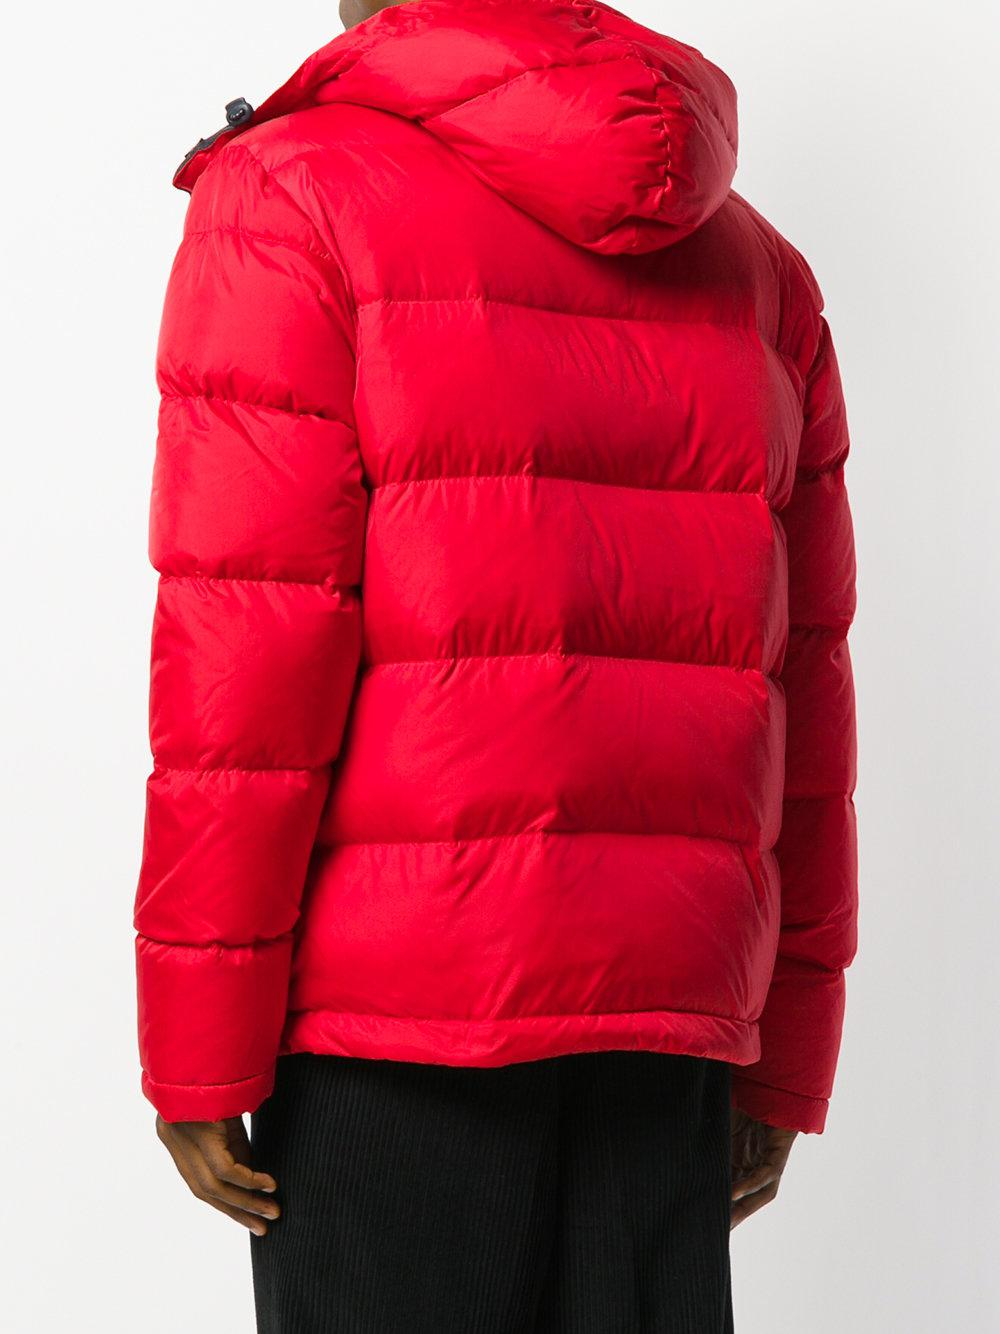 Lyst Wood Wood Hooded Puffer Coat In Red For Men